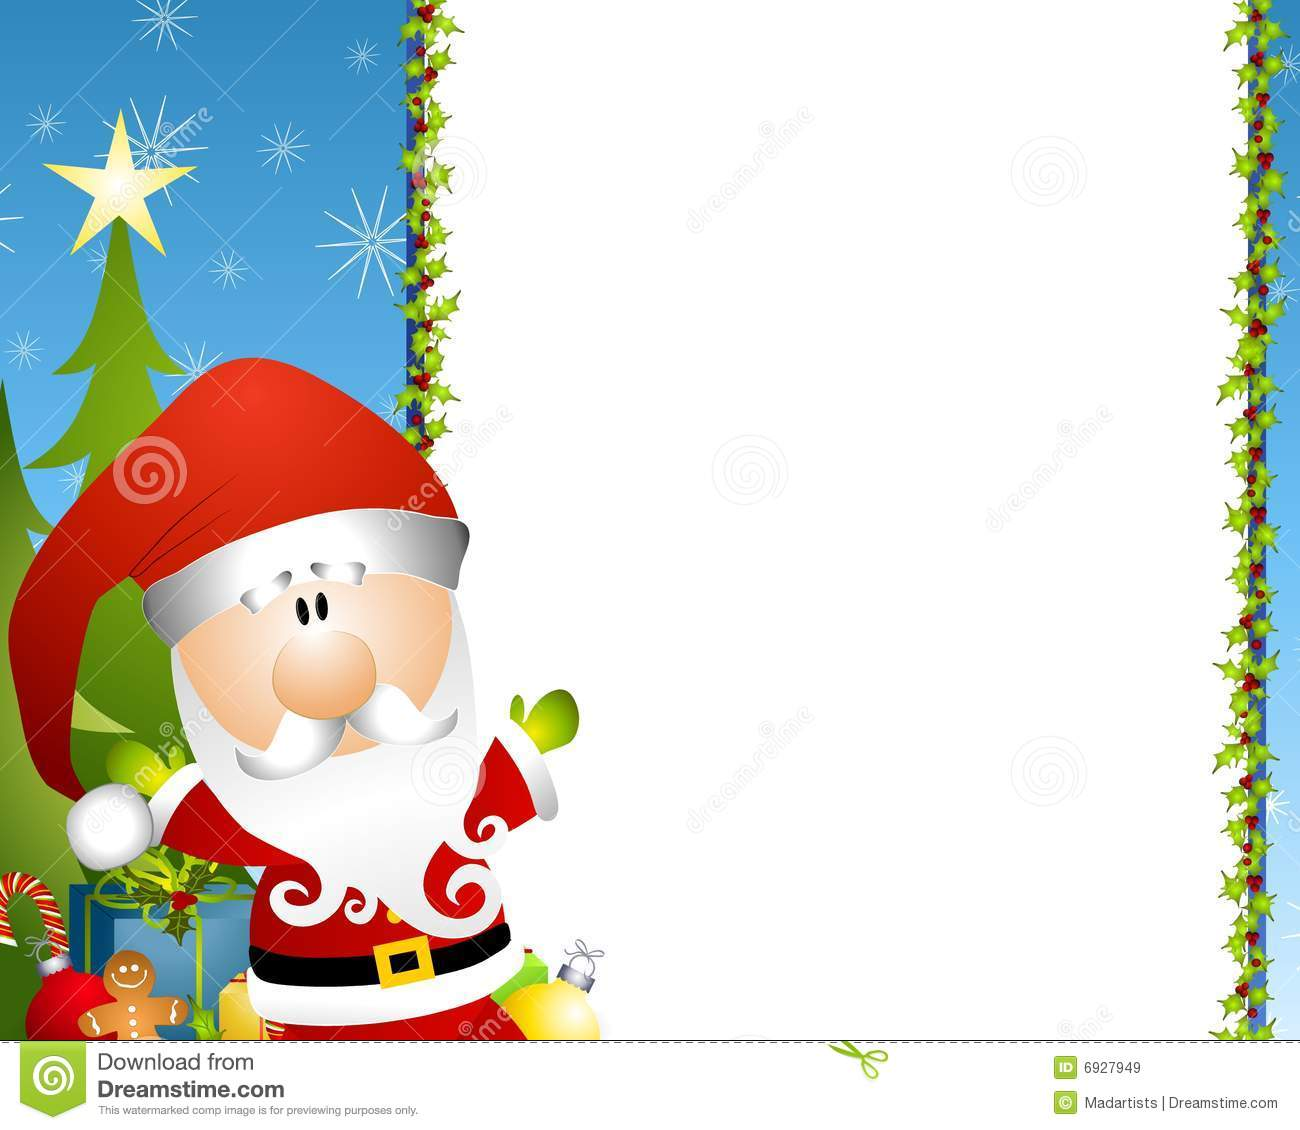 Illustration Featuring A Santa Claus With Holly Border And Presents